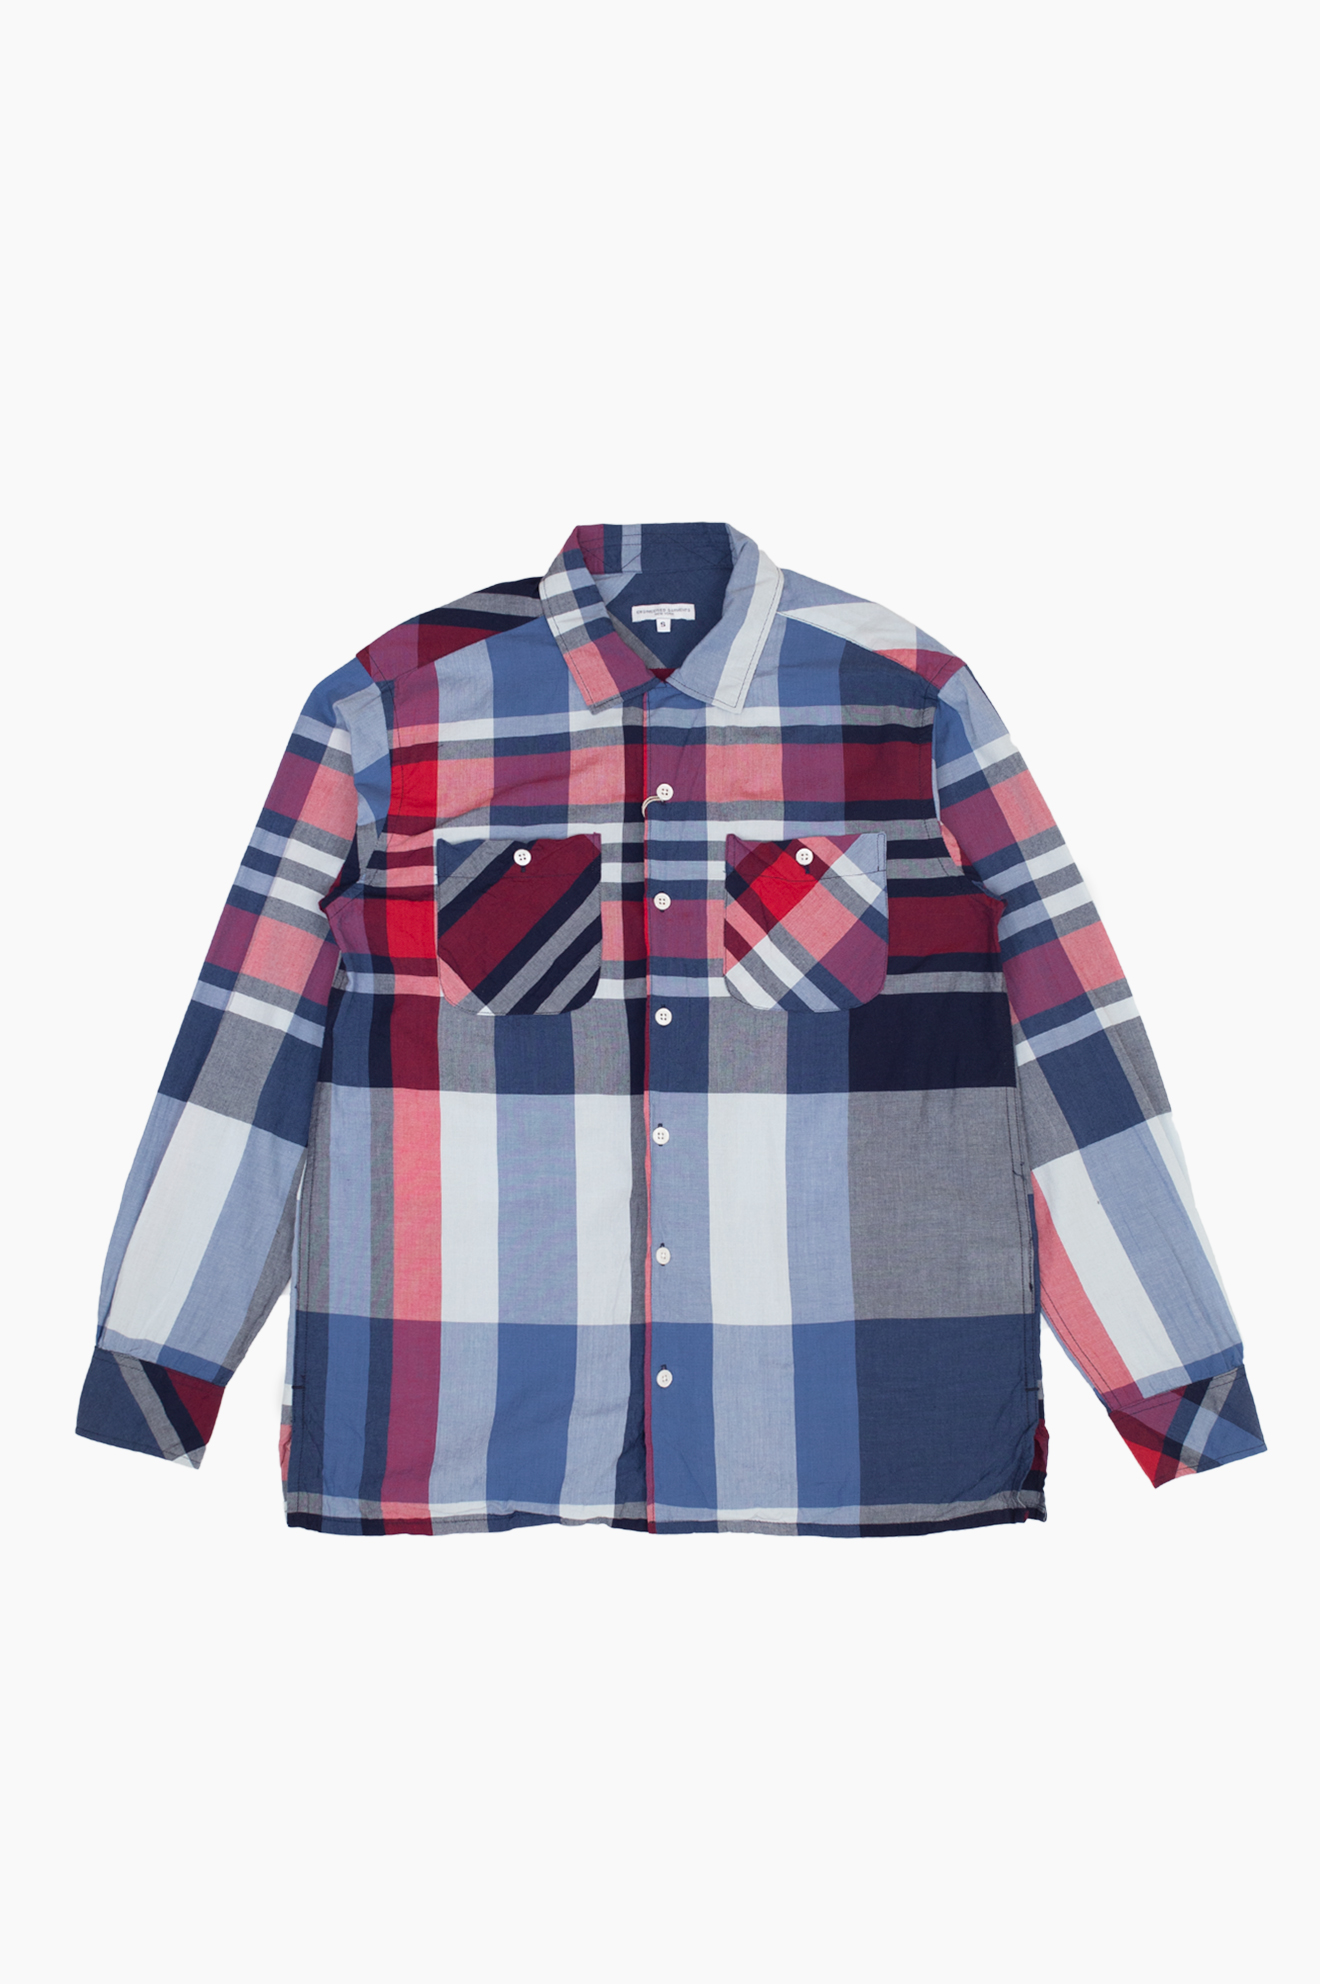 Classic Shirt Bib Madras Plaid Navy